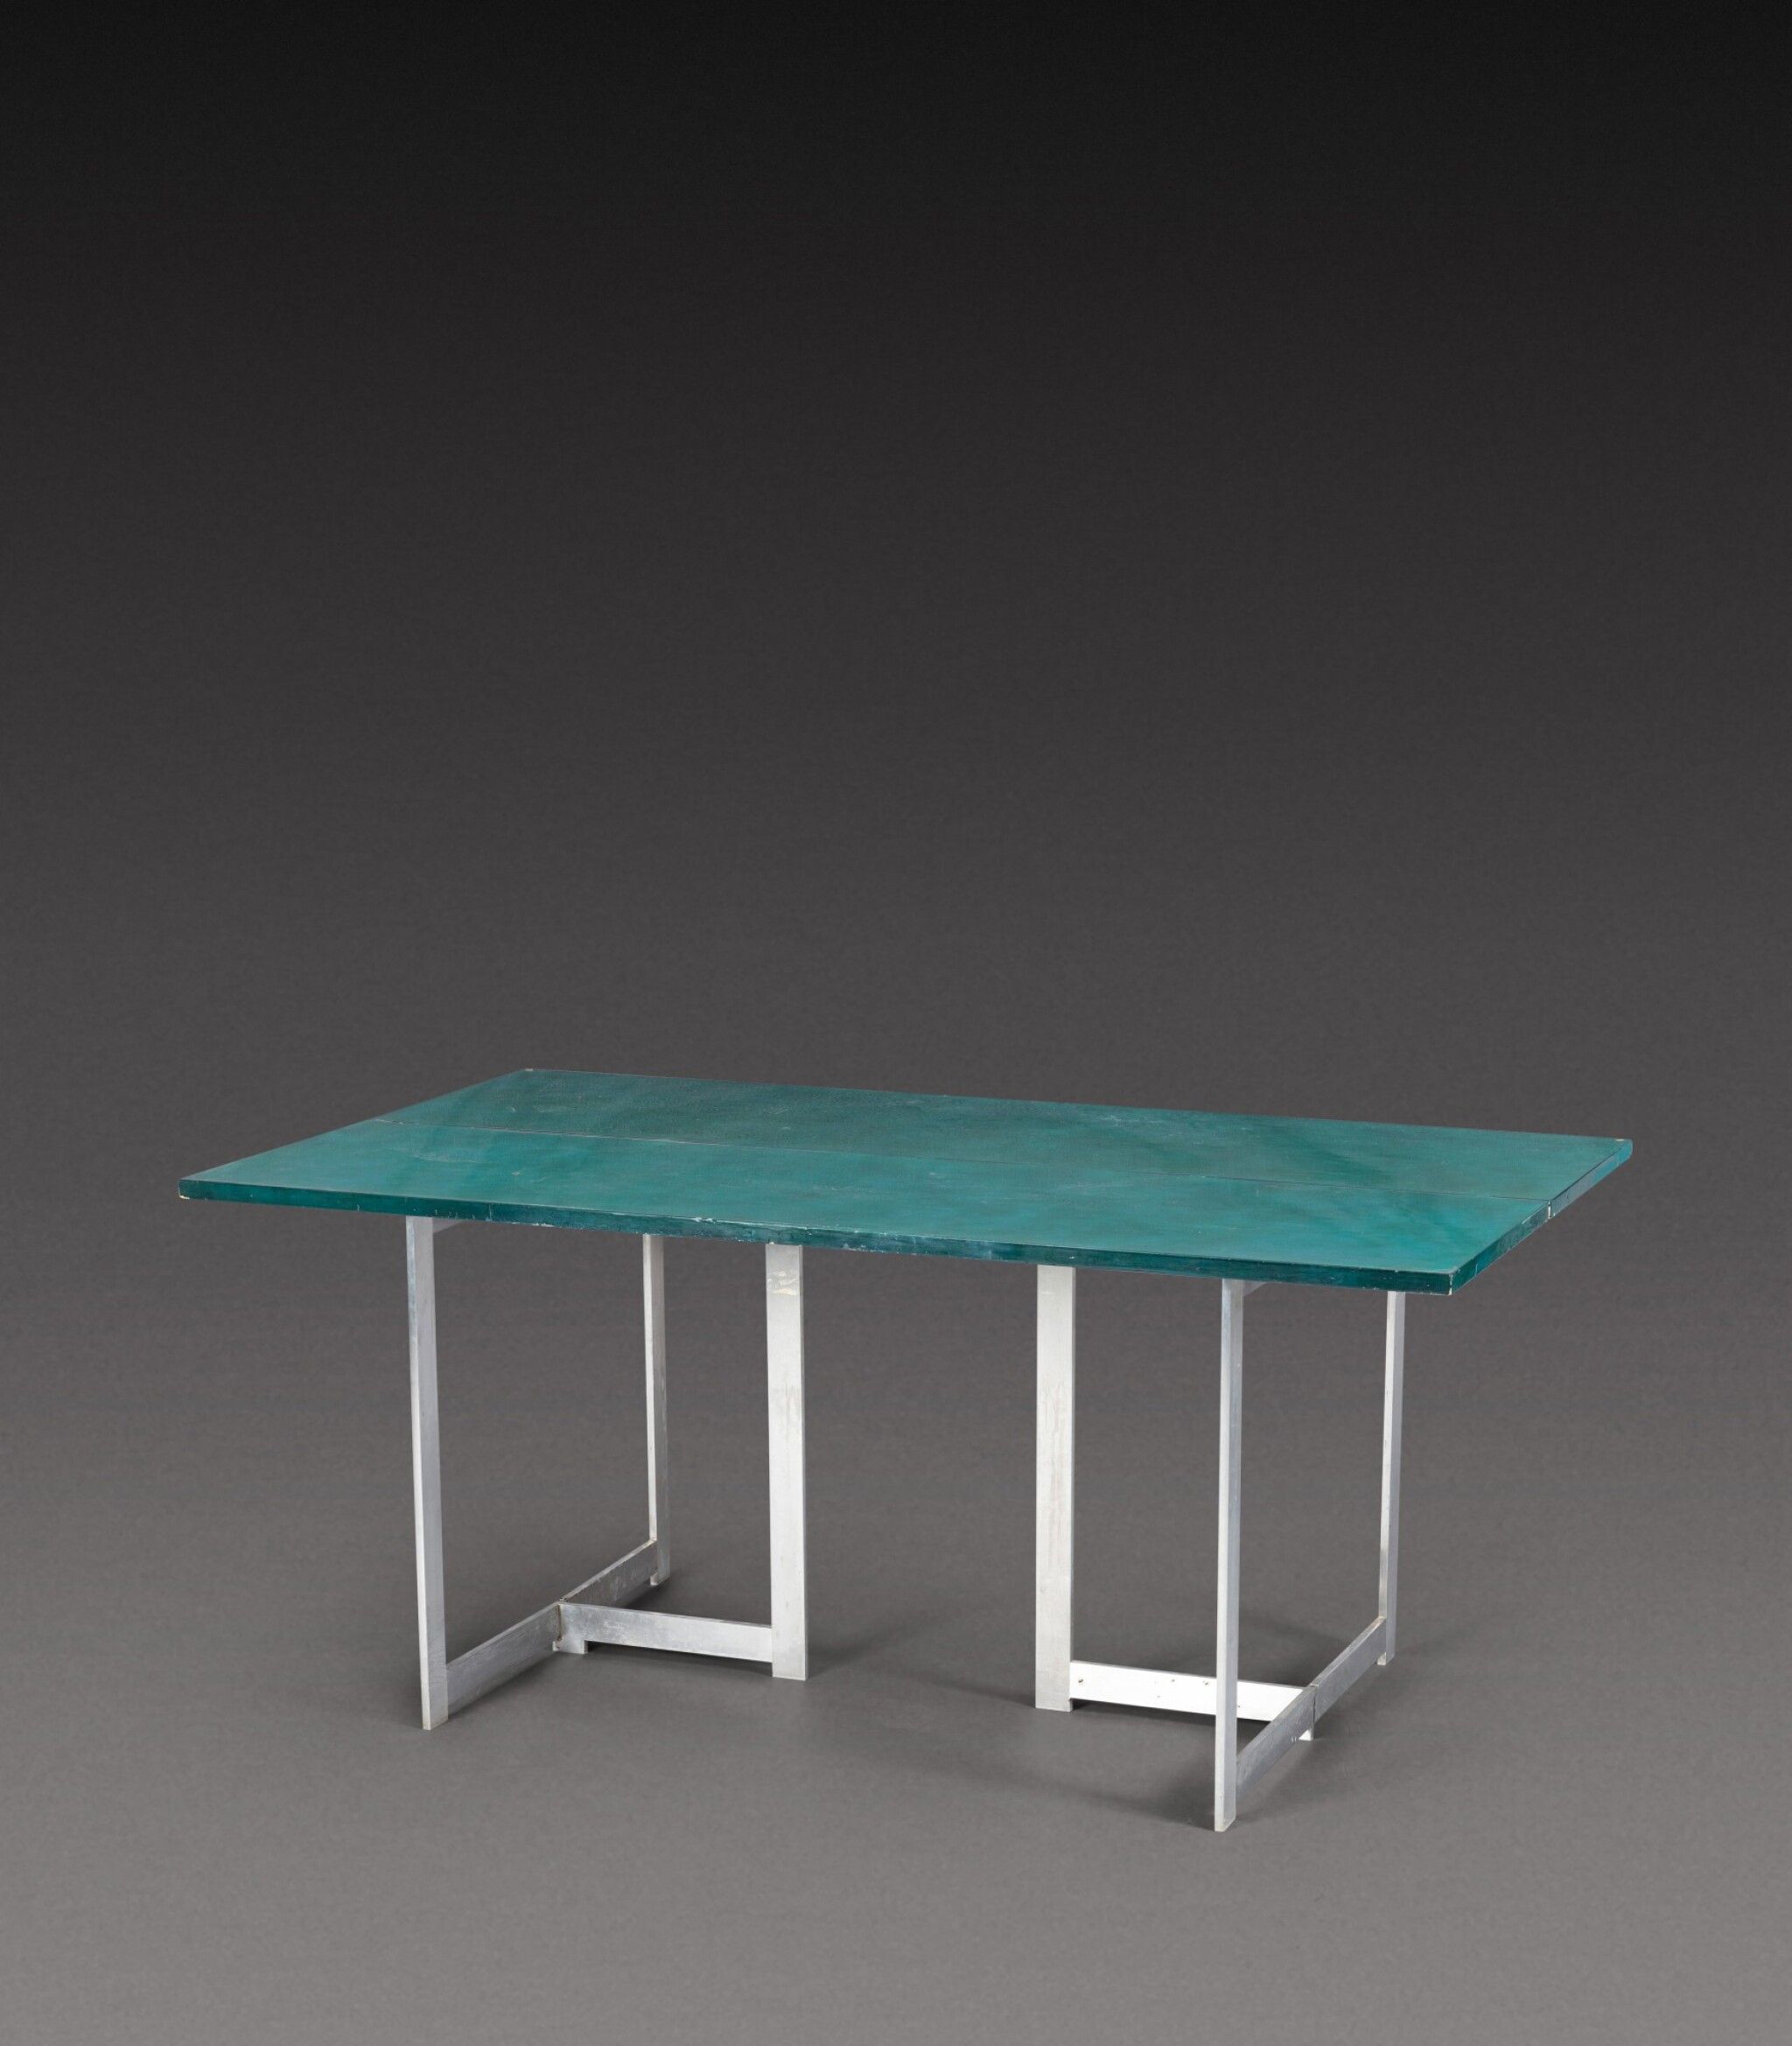 View 1 of Lot 191. Extendable console table.